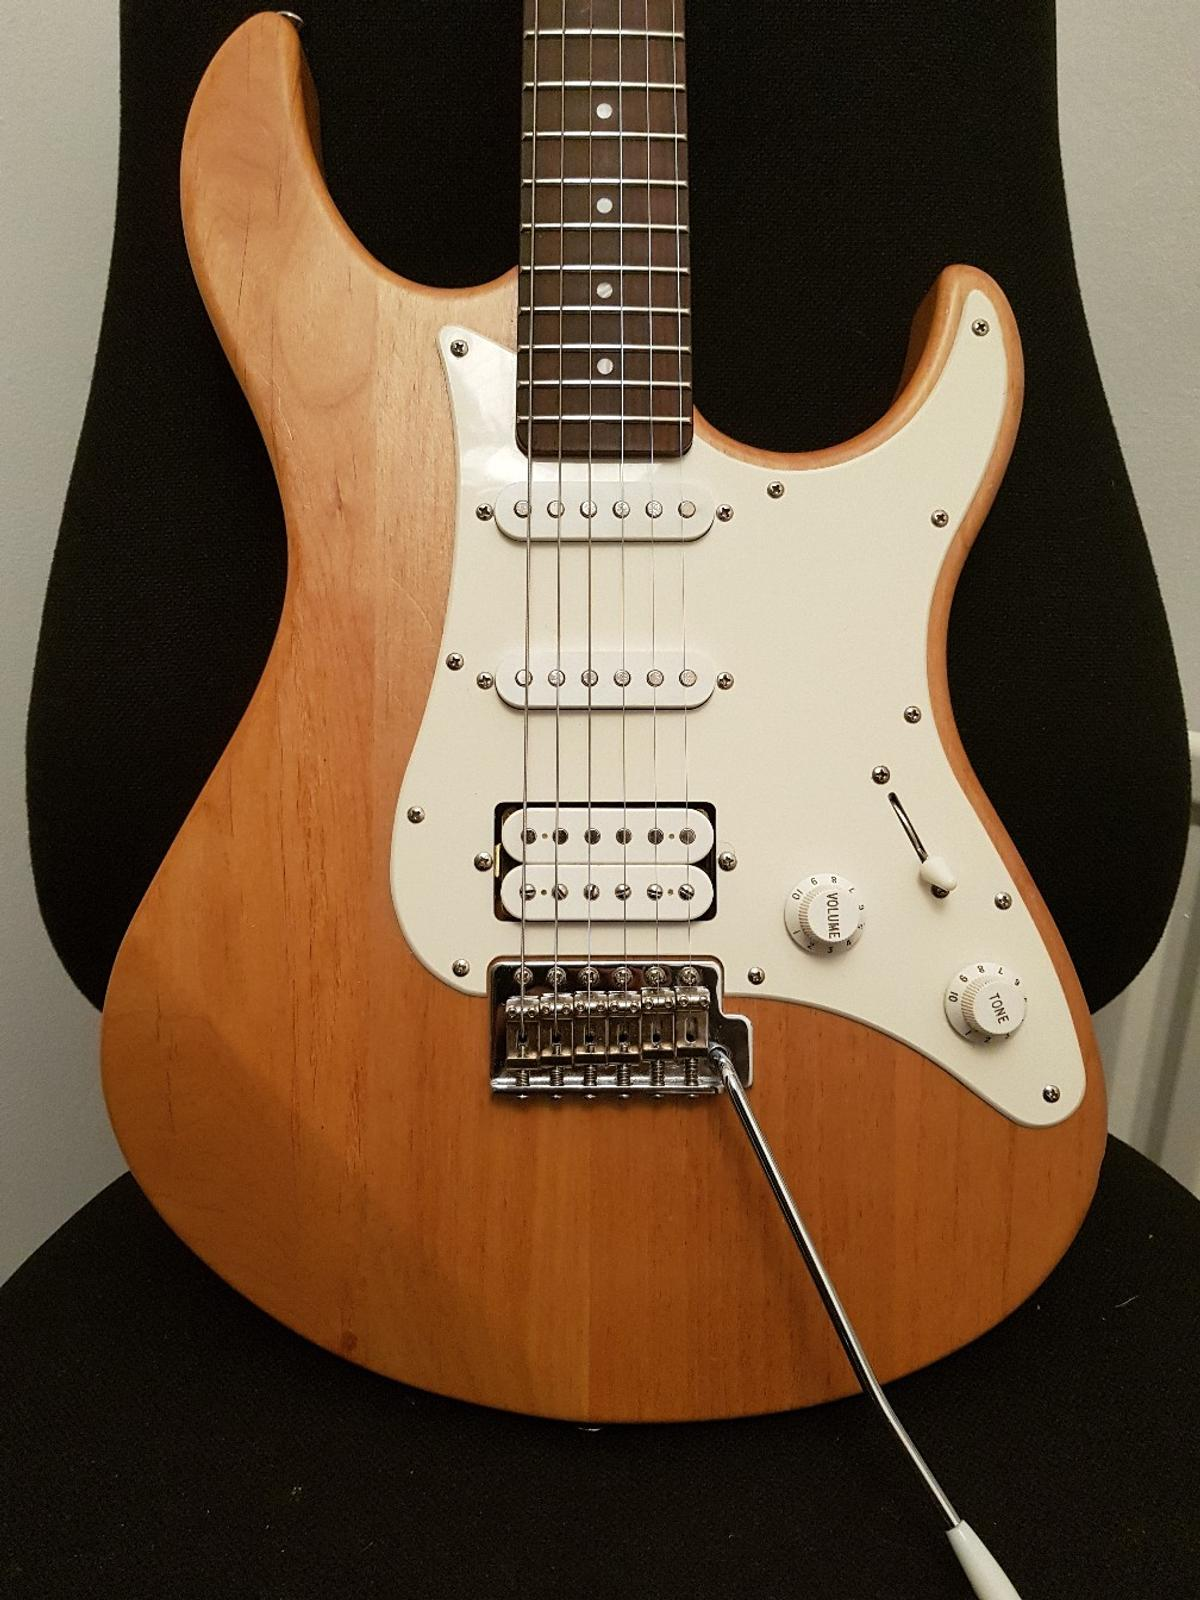 Yamaha Pacifica fender strat style guitar in B74 Birmingham